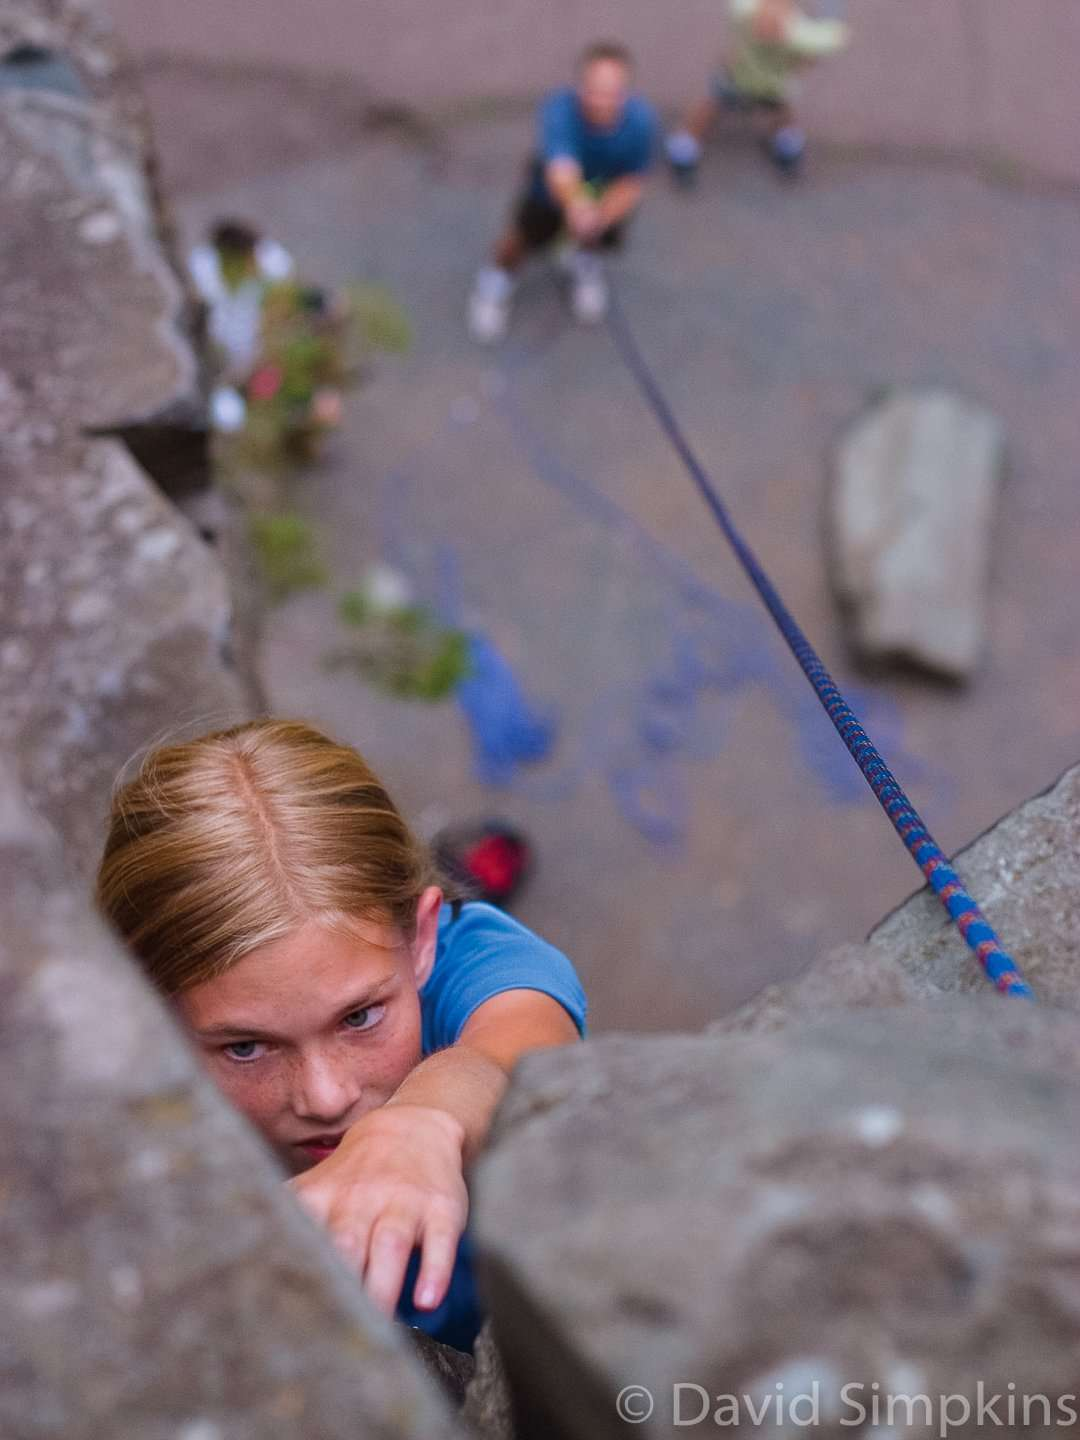 Interstate State Park is one of five Minnesota state parks to offer rock climbing opportunities